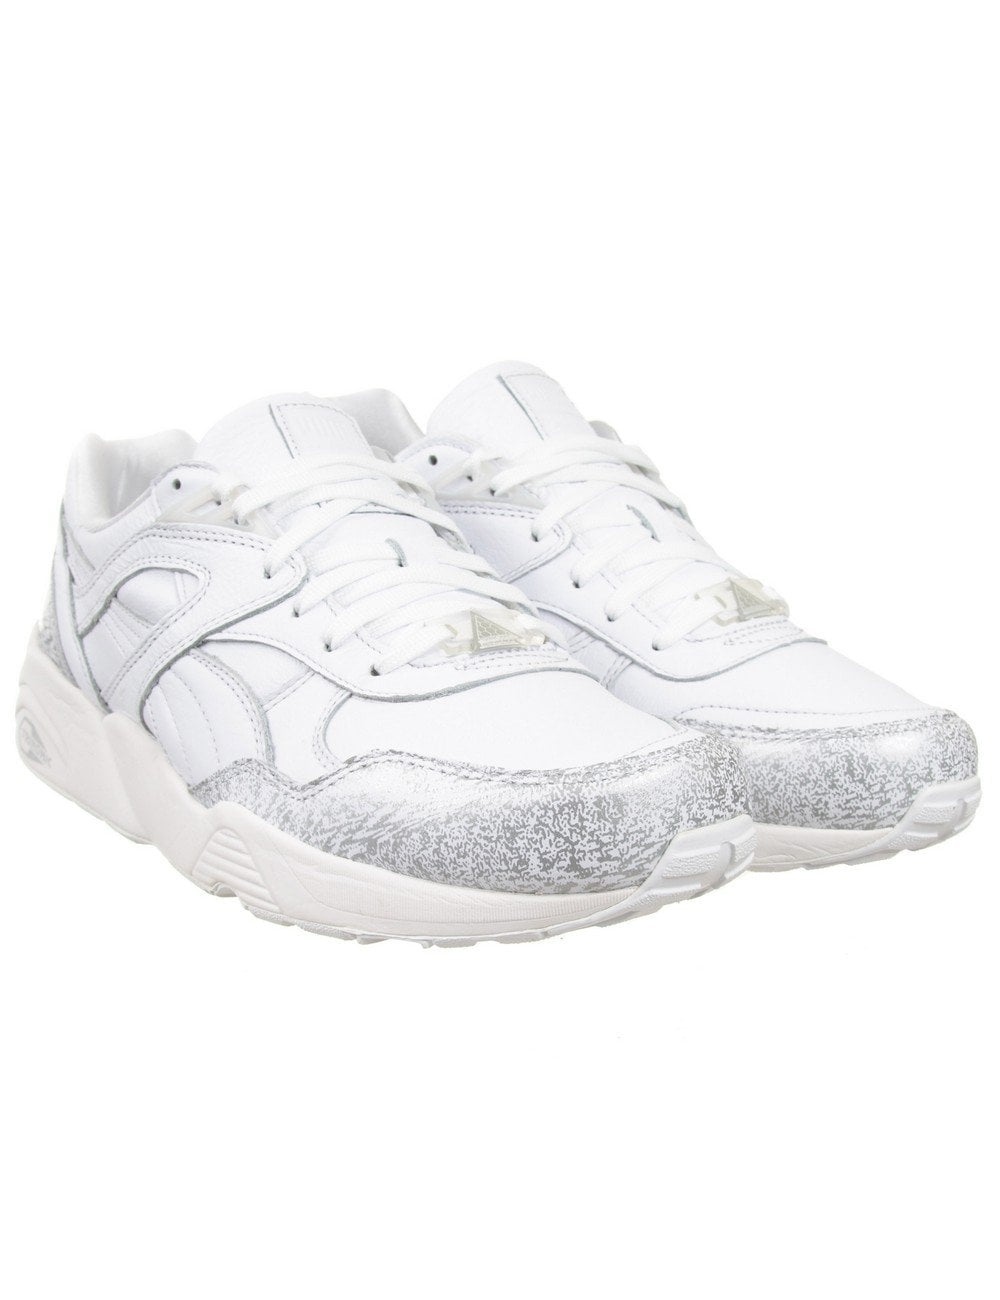 Puma R698 Shoes - White 3M Silver (Snow Splatter Pack) - Trainers ... 7bc848114